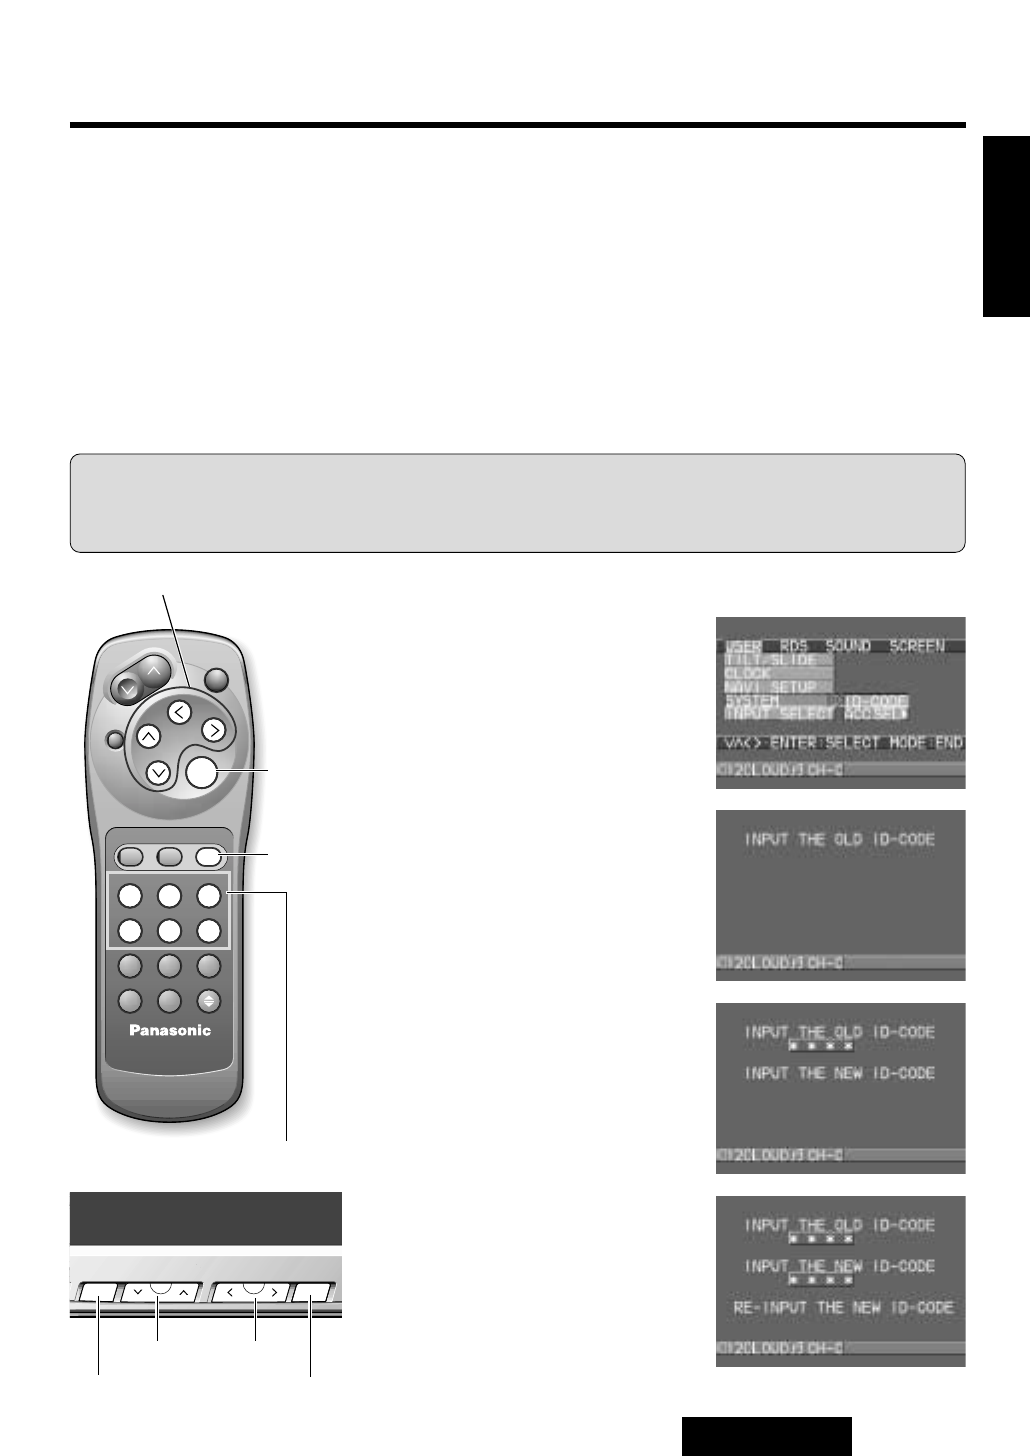 panasonic car video system user manual how to and user guide rh taxibermuda co Sony User Manual Guide Sony Operating Manuals